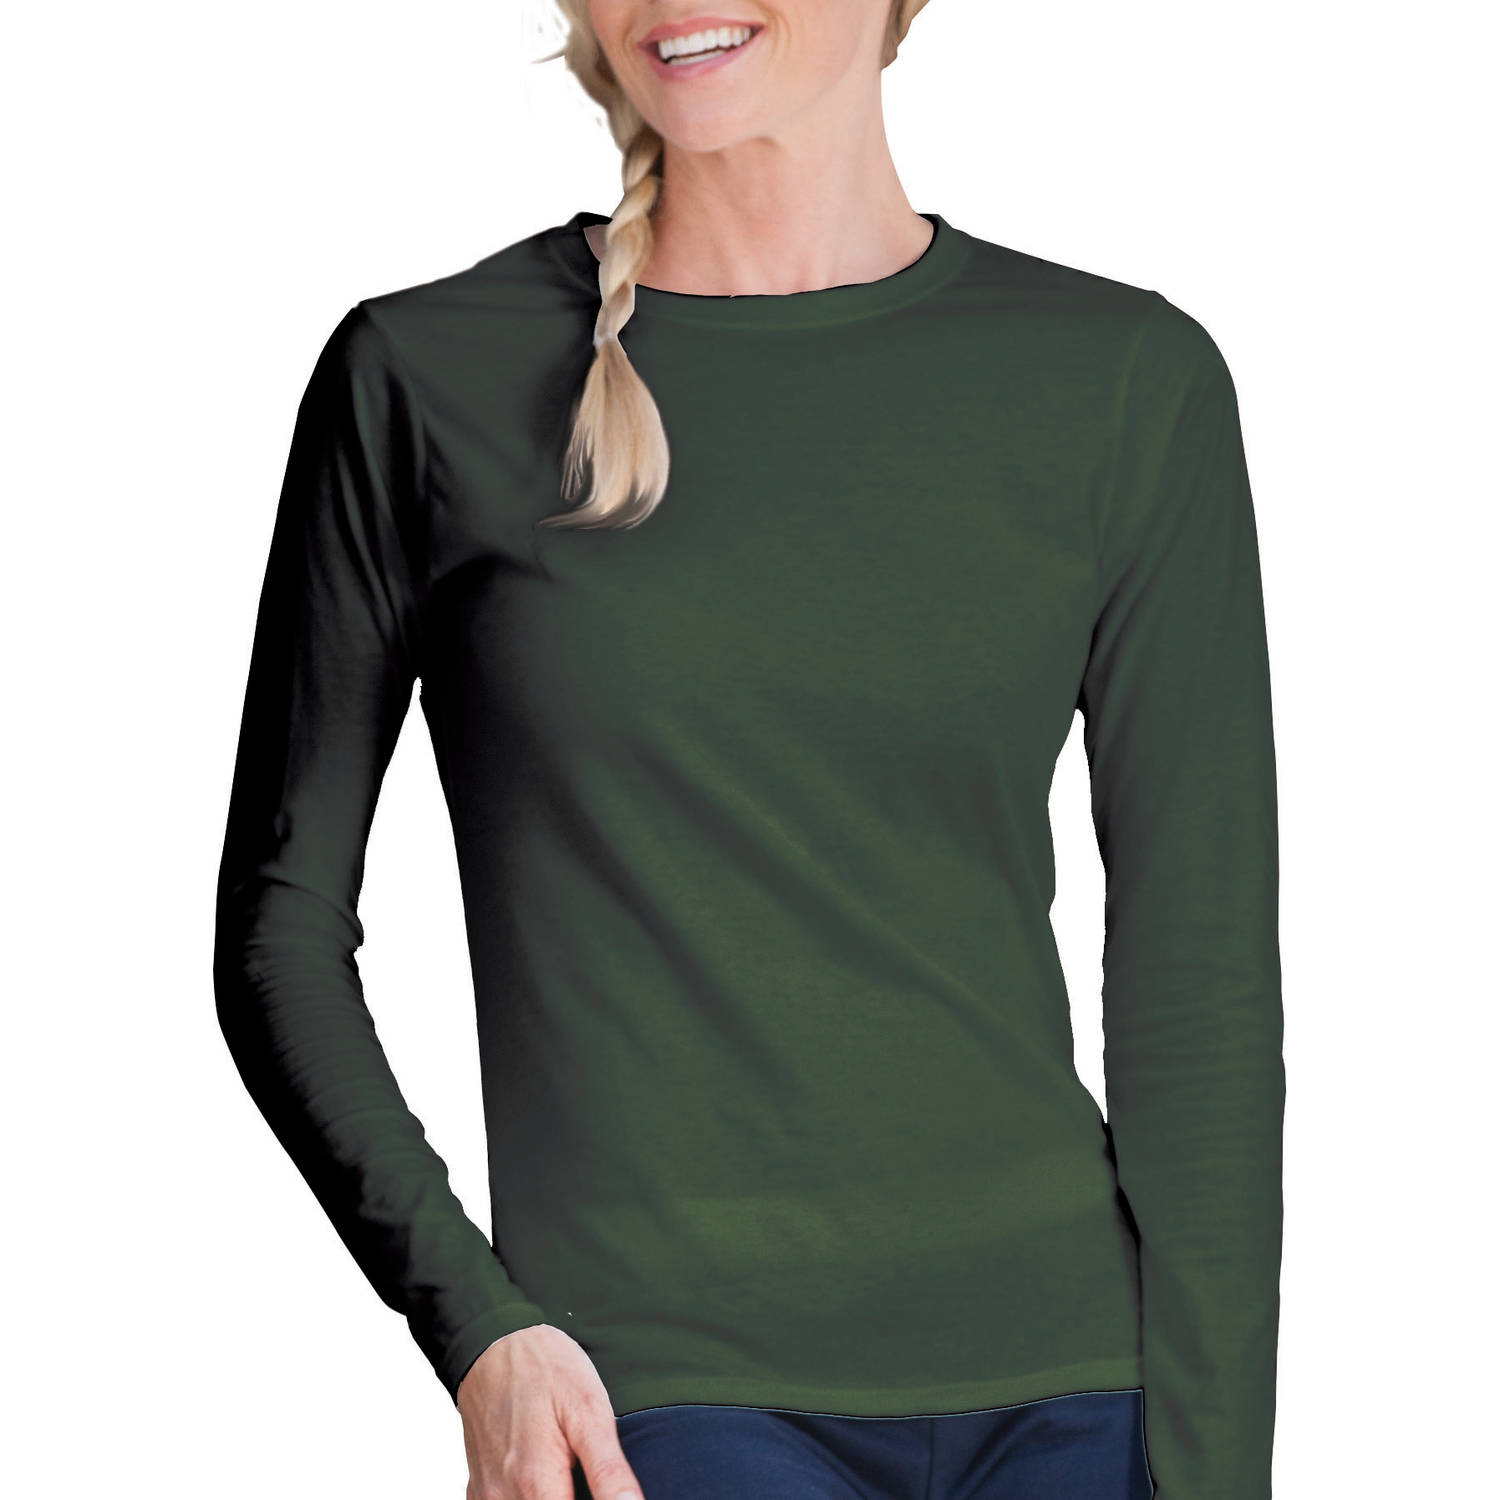 Gildan Women's Fitted Long Sleeve T-Shirt - Walmart.com